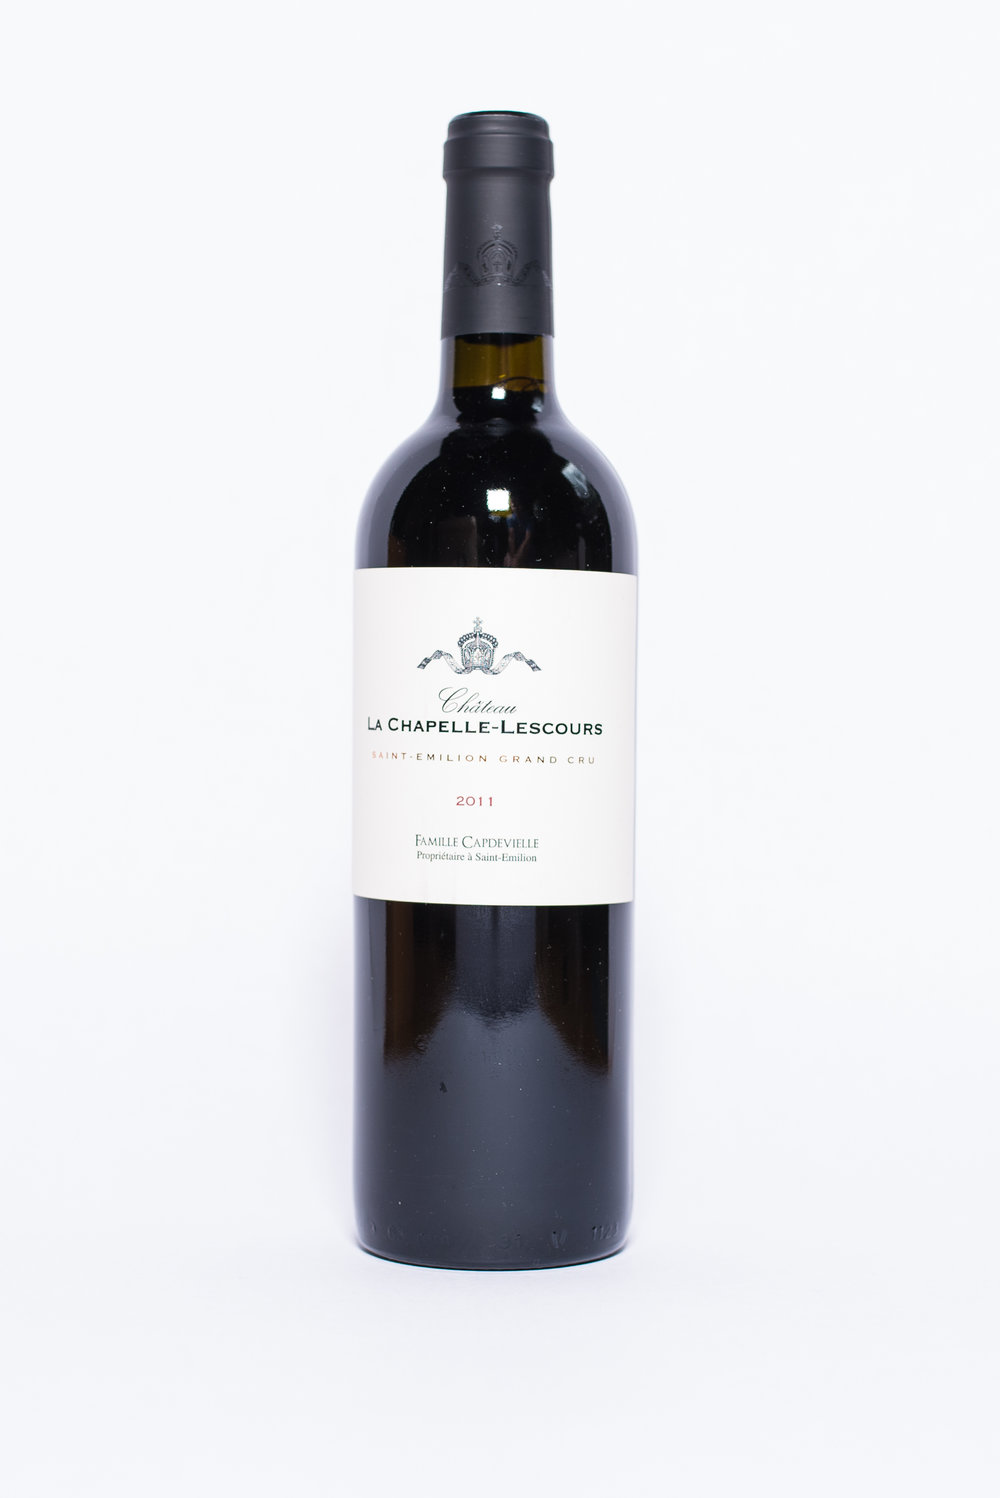 La Chapelle Lescours Saint Emilion Grand Cru 2011    Producer:   Capdevielle & Ginter    Region:  Bordeaux  Grapes:  90% Merlot, 10% Cabernet-Franc